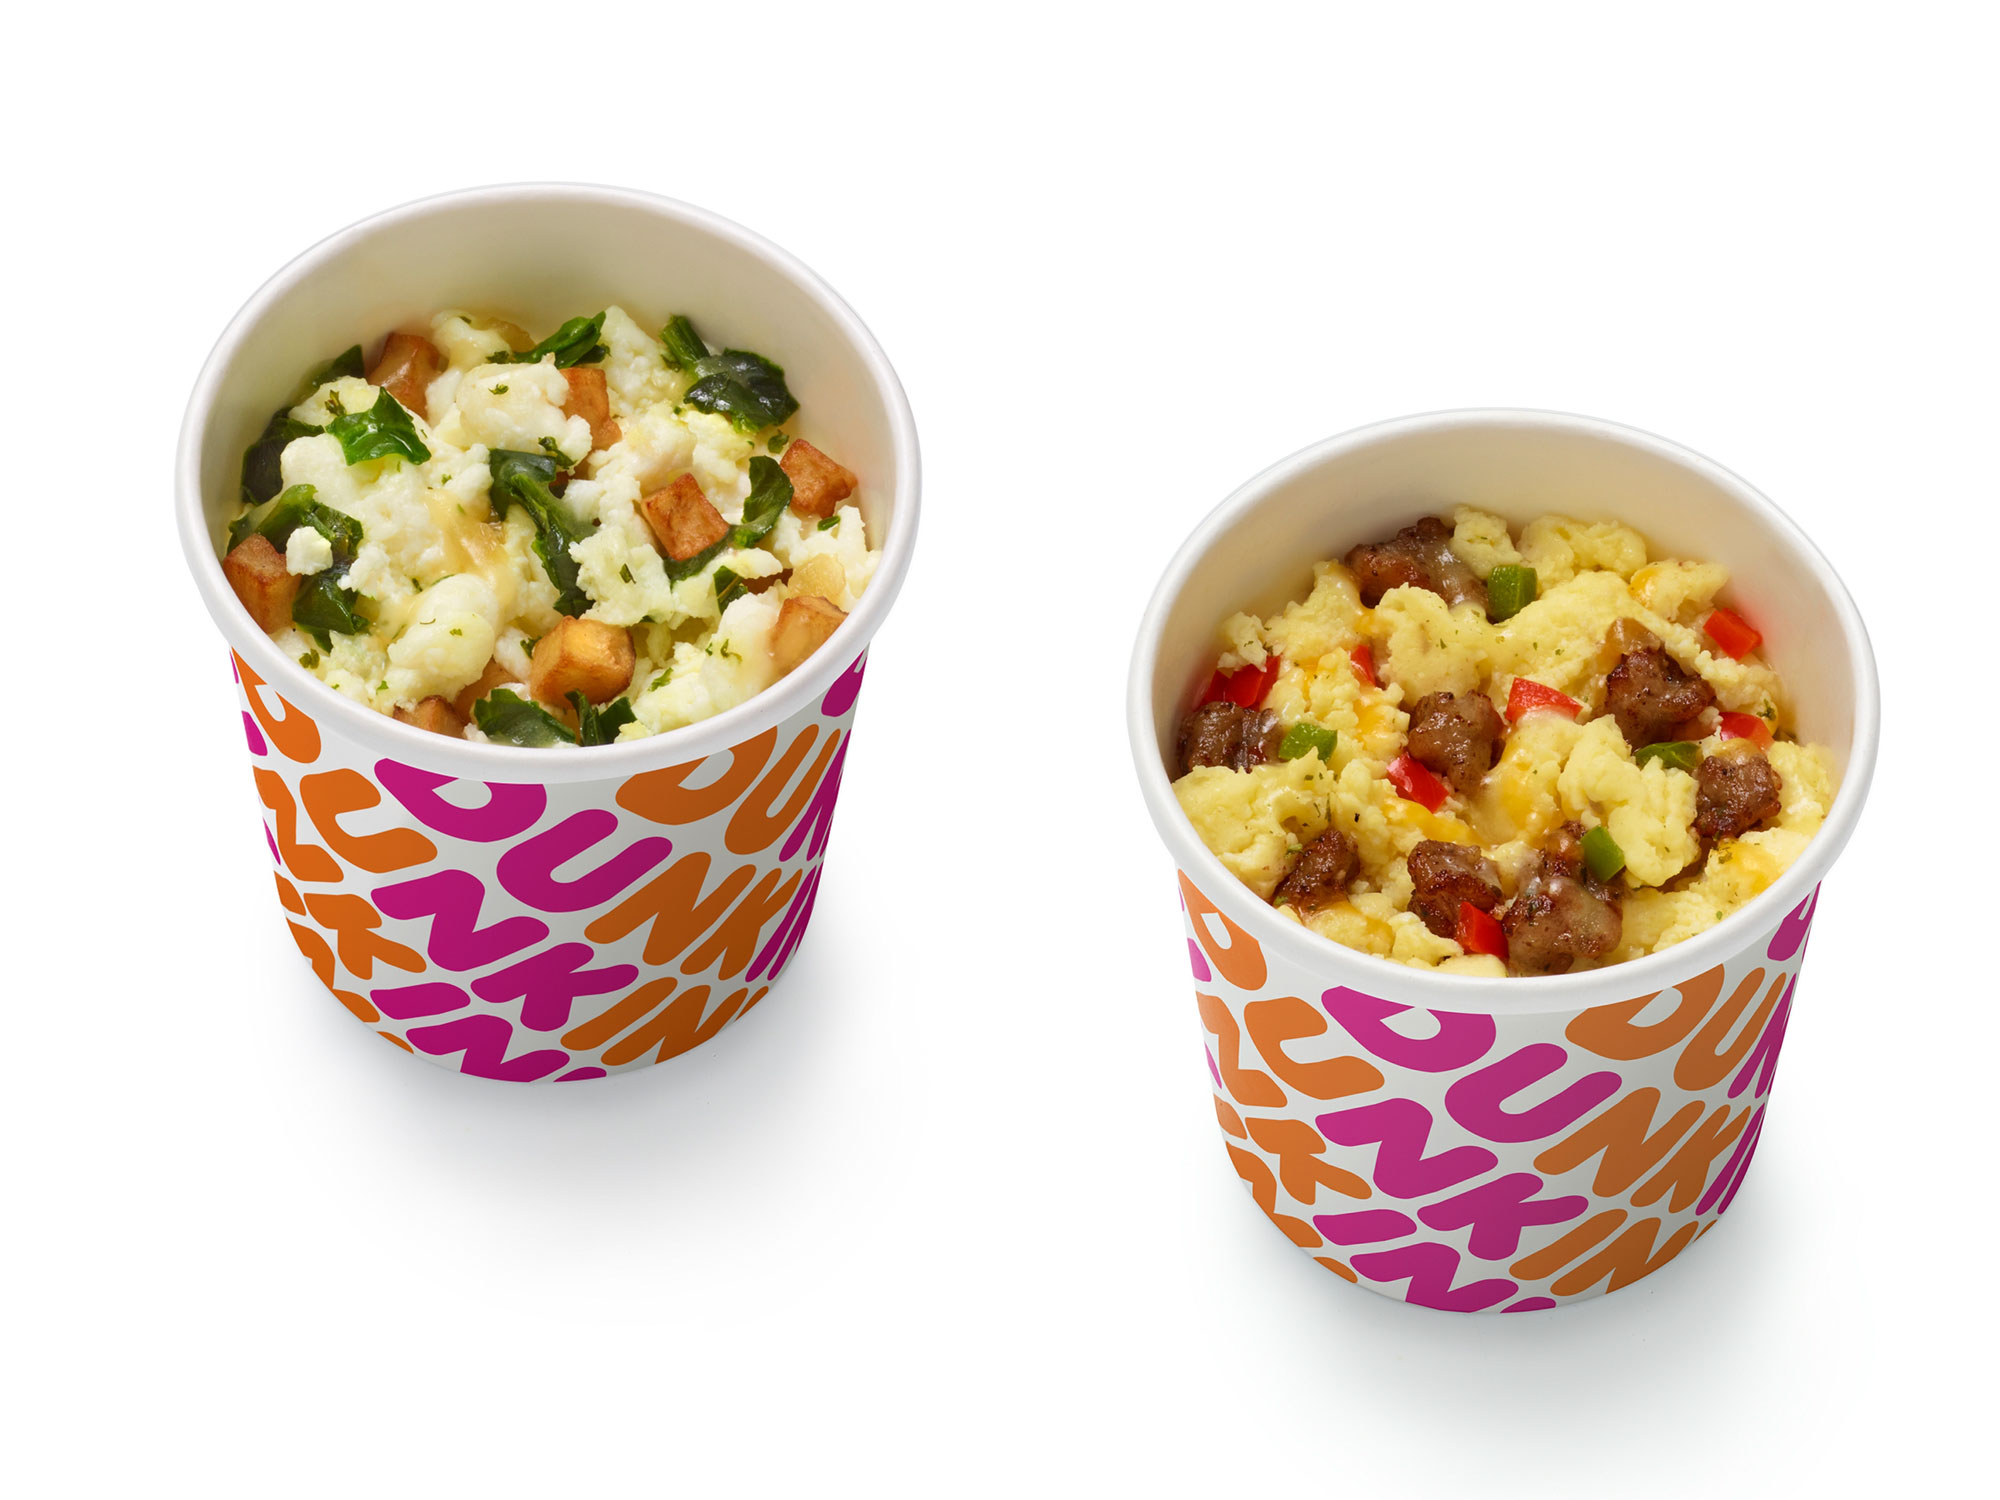 Dunkin' Just Launched Two New Breakfast Bowls—And They're Actually Pretty Healthy